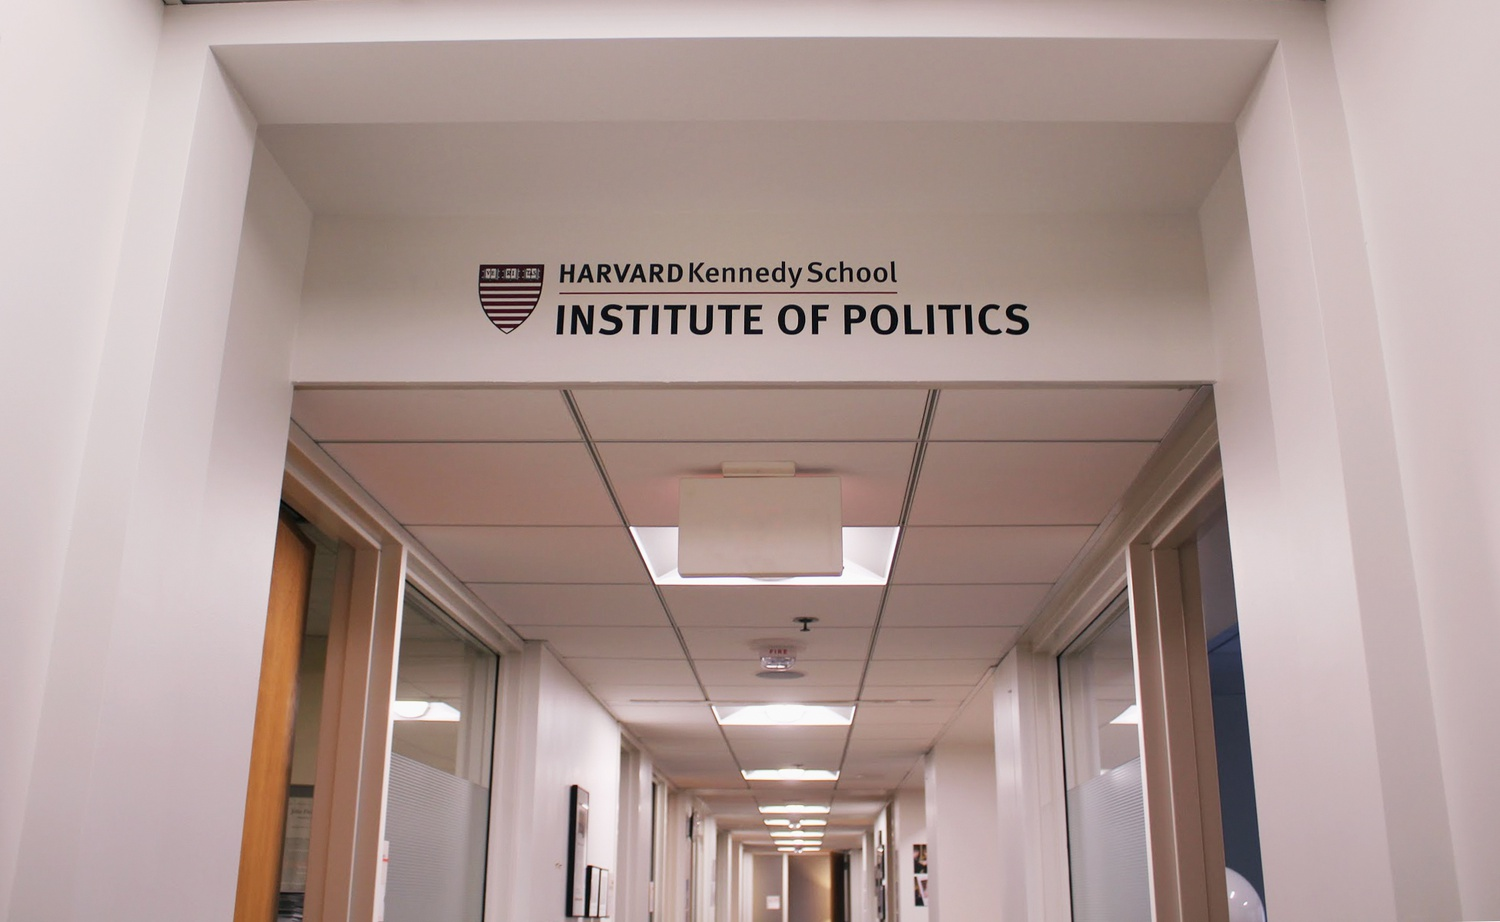 The Institute of Politics removed U.S. Representative Elise M. Stefanik '06 (R-N.Y.) from its top leadership committee on Tuesday after she forwarded false claims about election fraud.